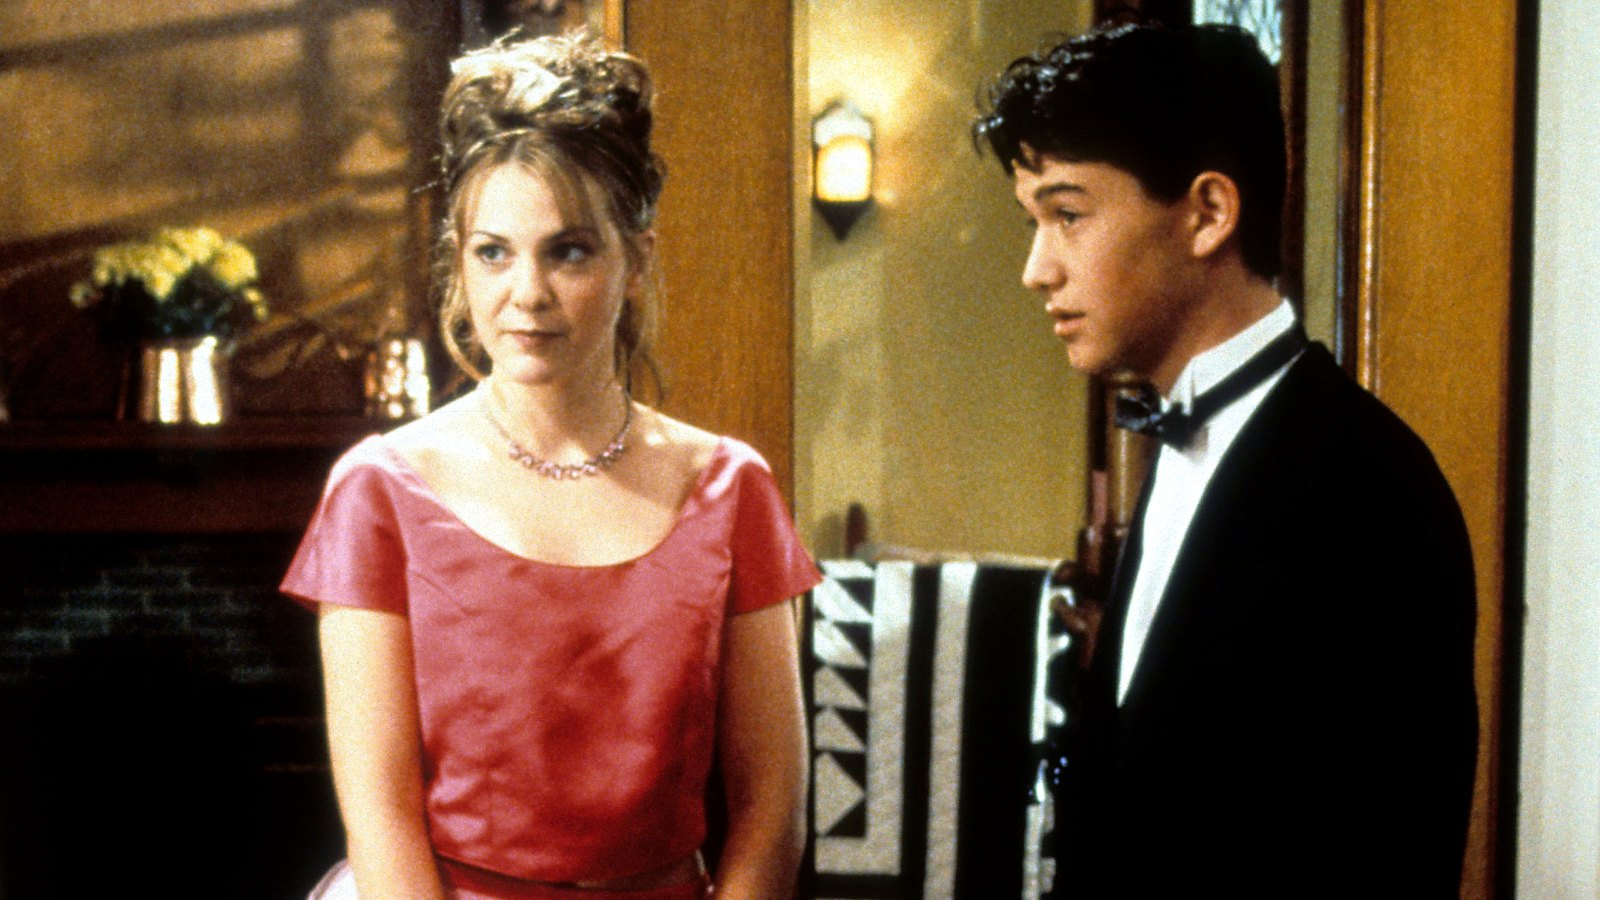 10 Things I Hate About You Cast Where Are They Now